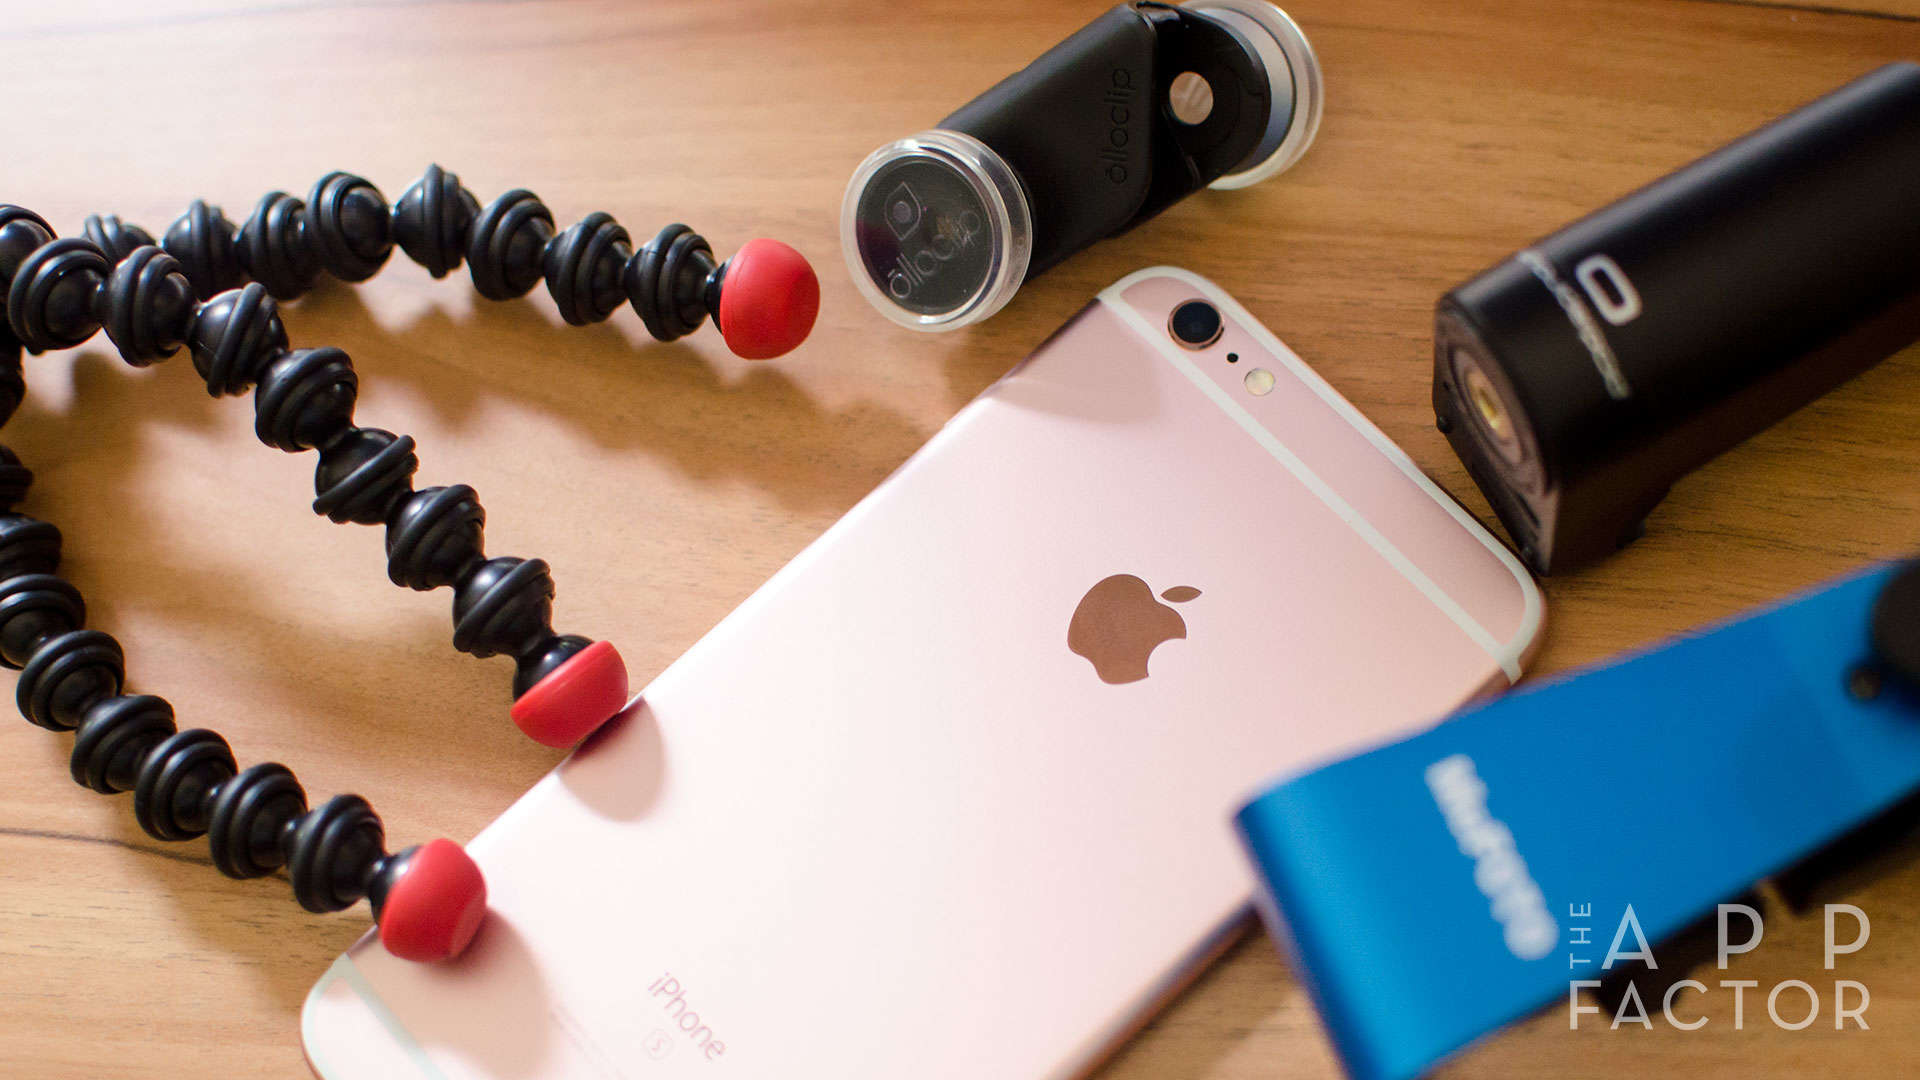 If you want to take your iPhone photography to the next level, these accessories will help you get the job done.